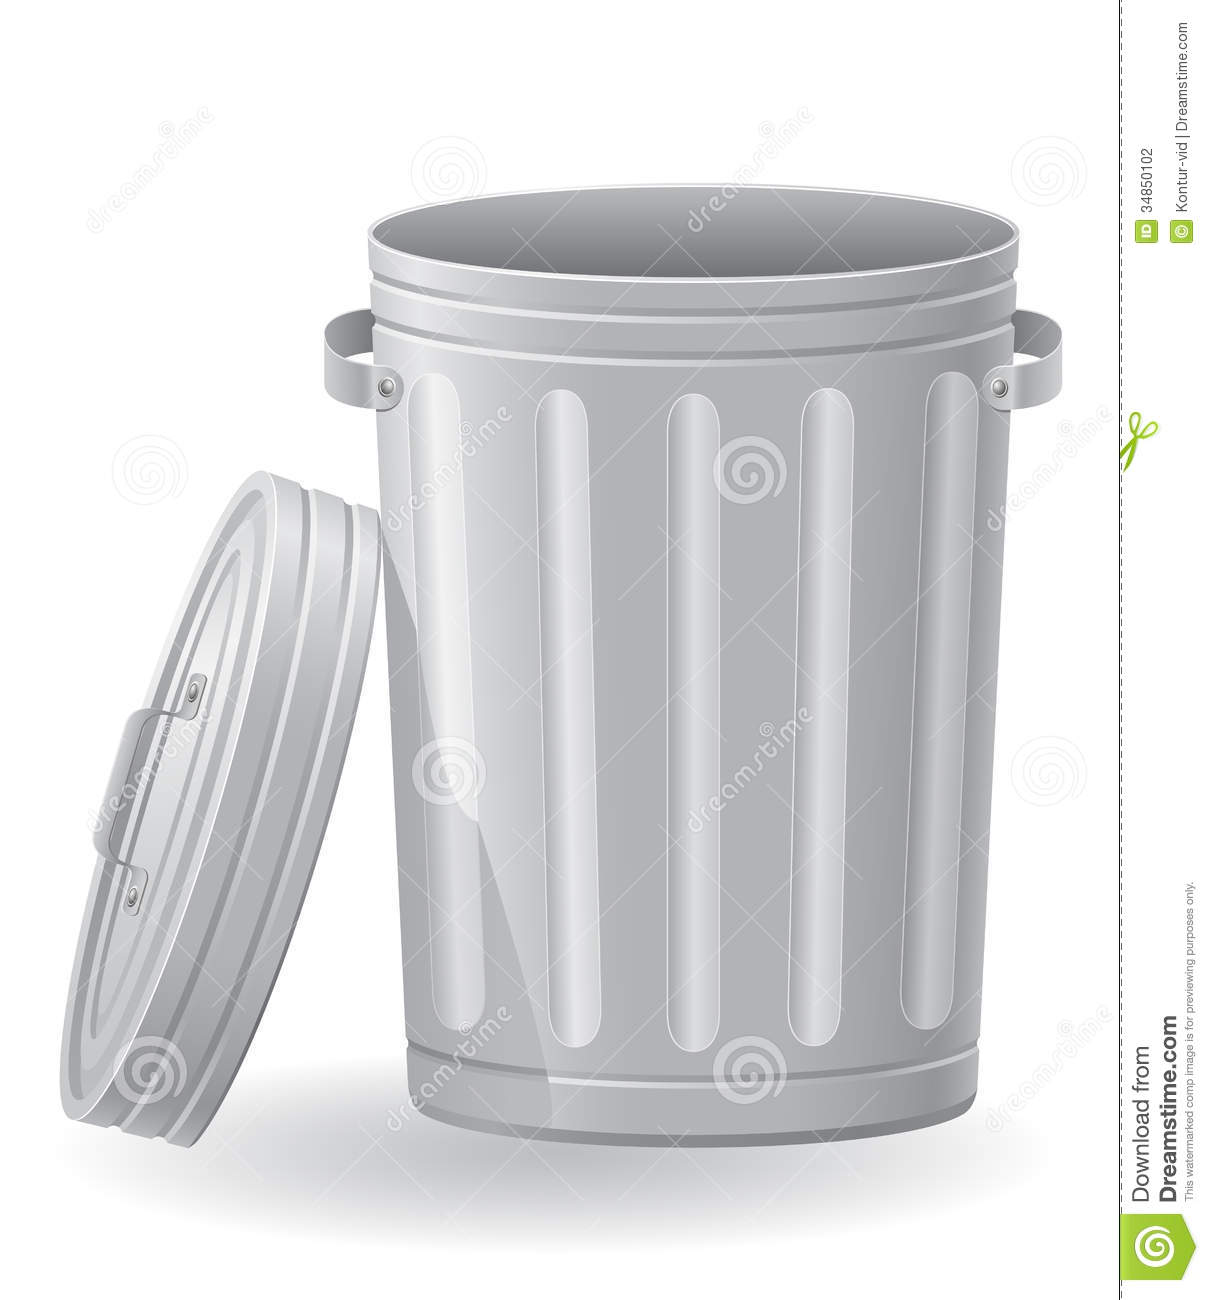 Trash Can Vector Illustration Stock Photography - Image: 34850102